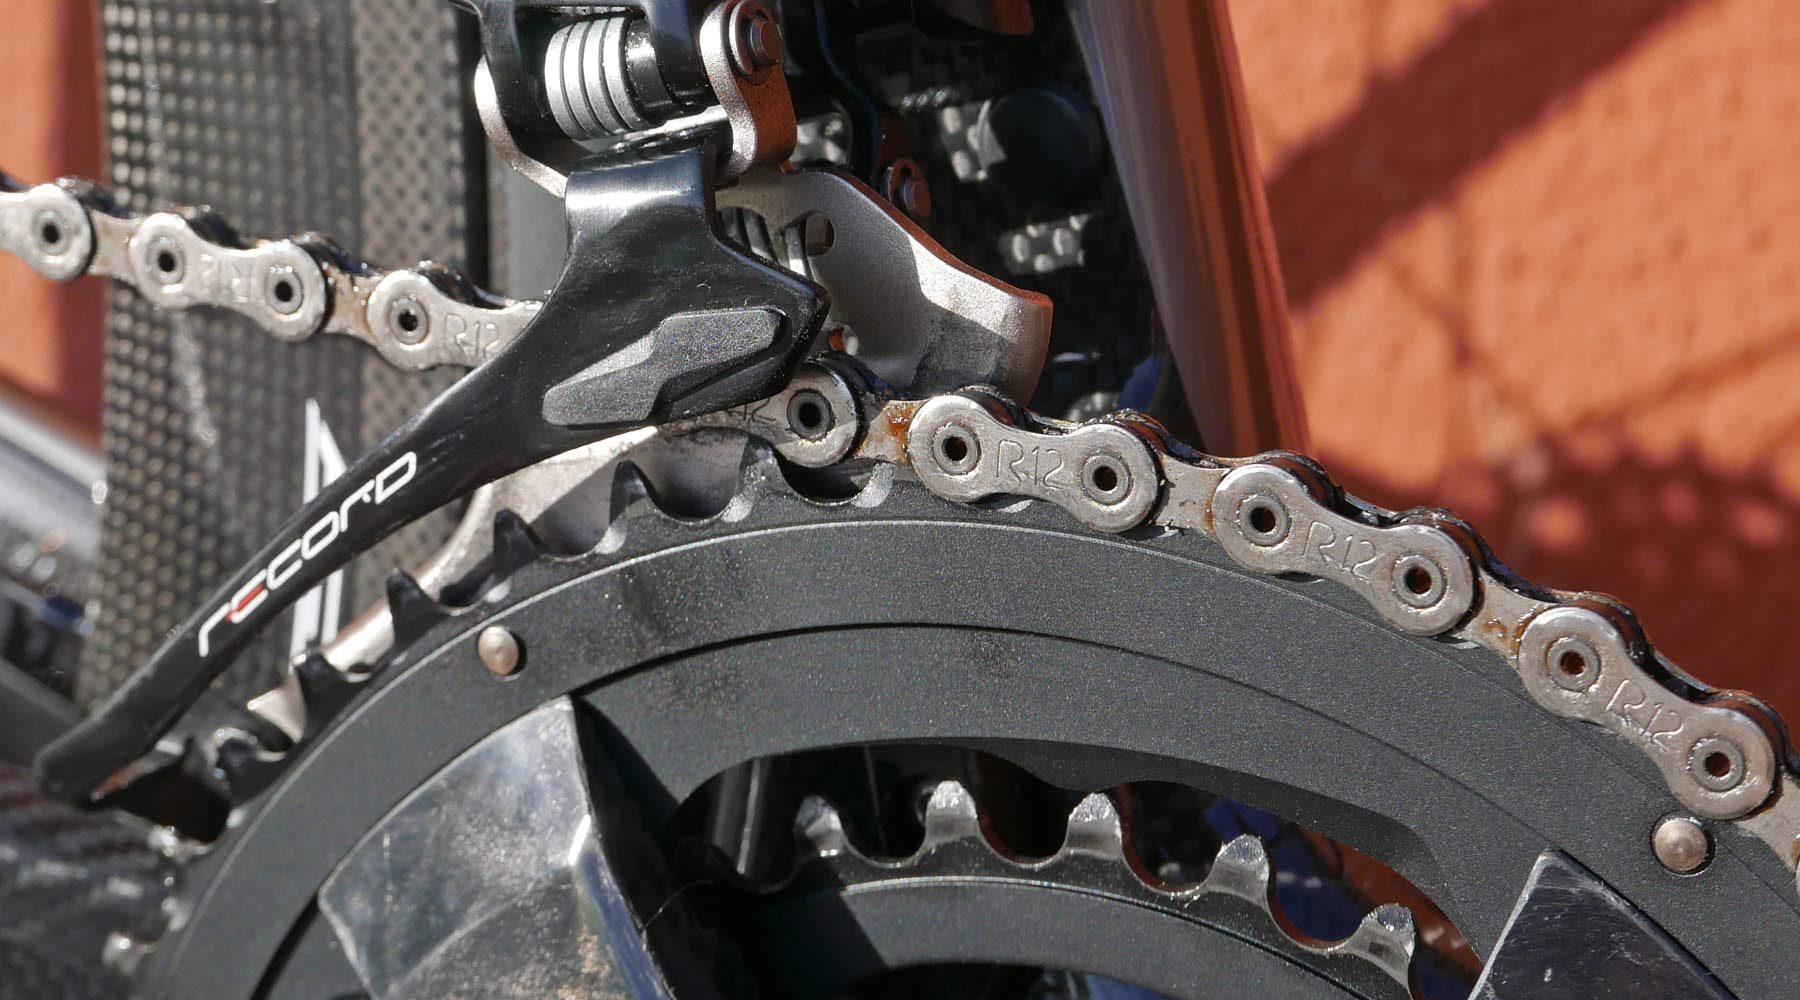 Campagnolo Record Movement 12 narrow R12 12-speed chain road bike groupset twelve-speed